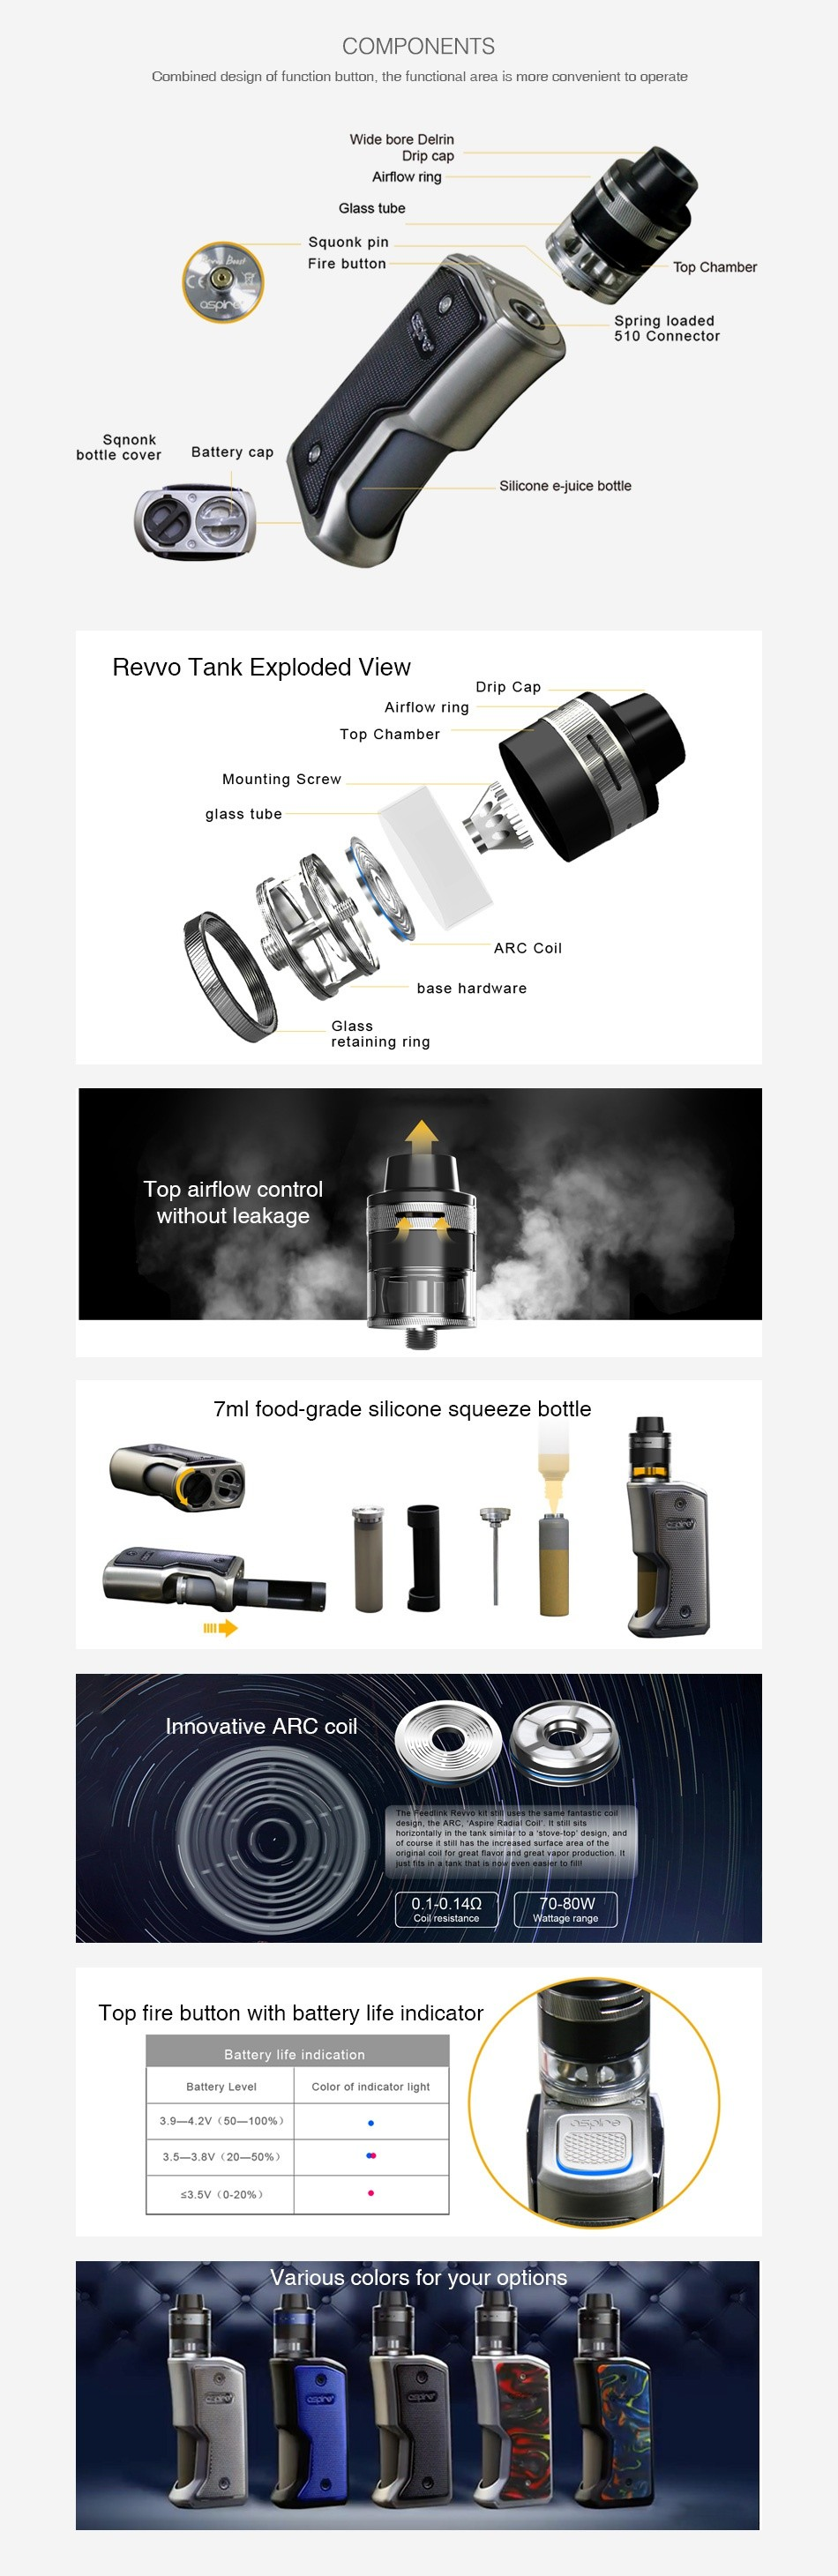 Aspire Feedlink Revvo Squonk Kit COMPONENTS Combined des gn of function button  the functional area is more conven ent to operat bottle cover Battery ca Revo Tank Exploded i base hard taining ring T ithaut leak 7ml food grade silicone squeeze bottle 0 1 0 14Q Top fire button with battery life indicator ColOr of ar dicate  I g 3 9 4 2Y 50 105  3 5 3Bv 20 50   3 5v0 20  Various colors for your options